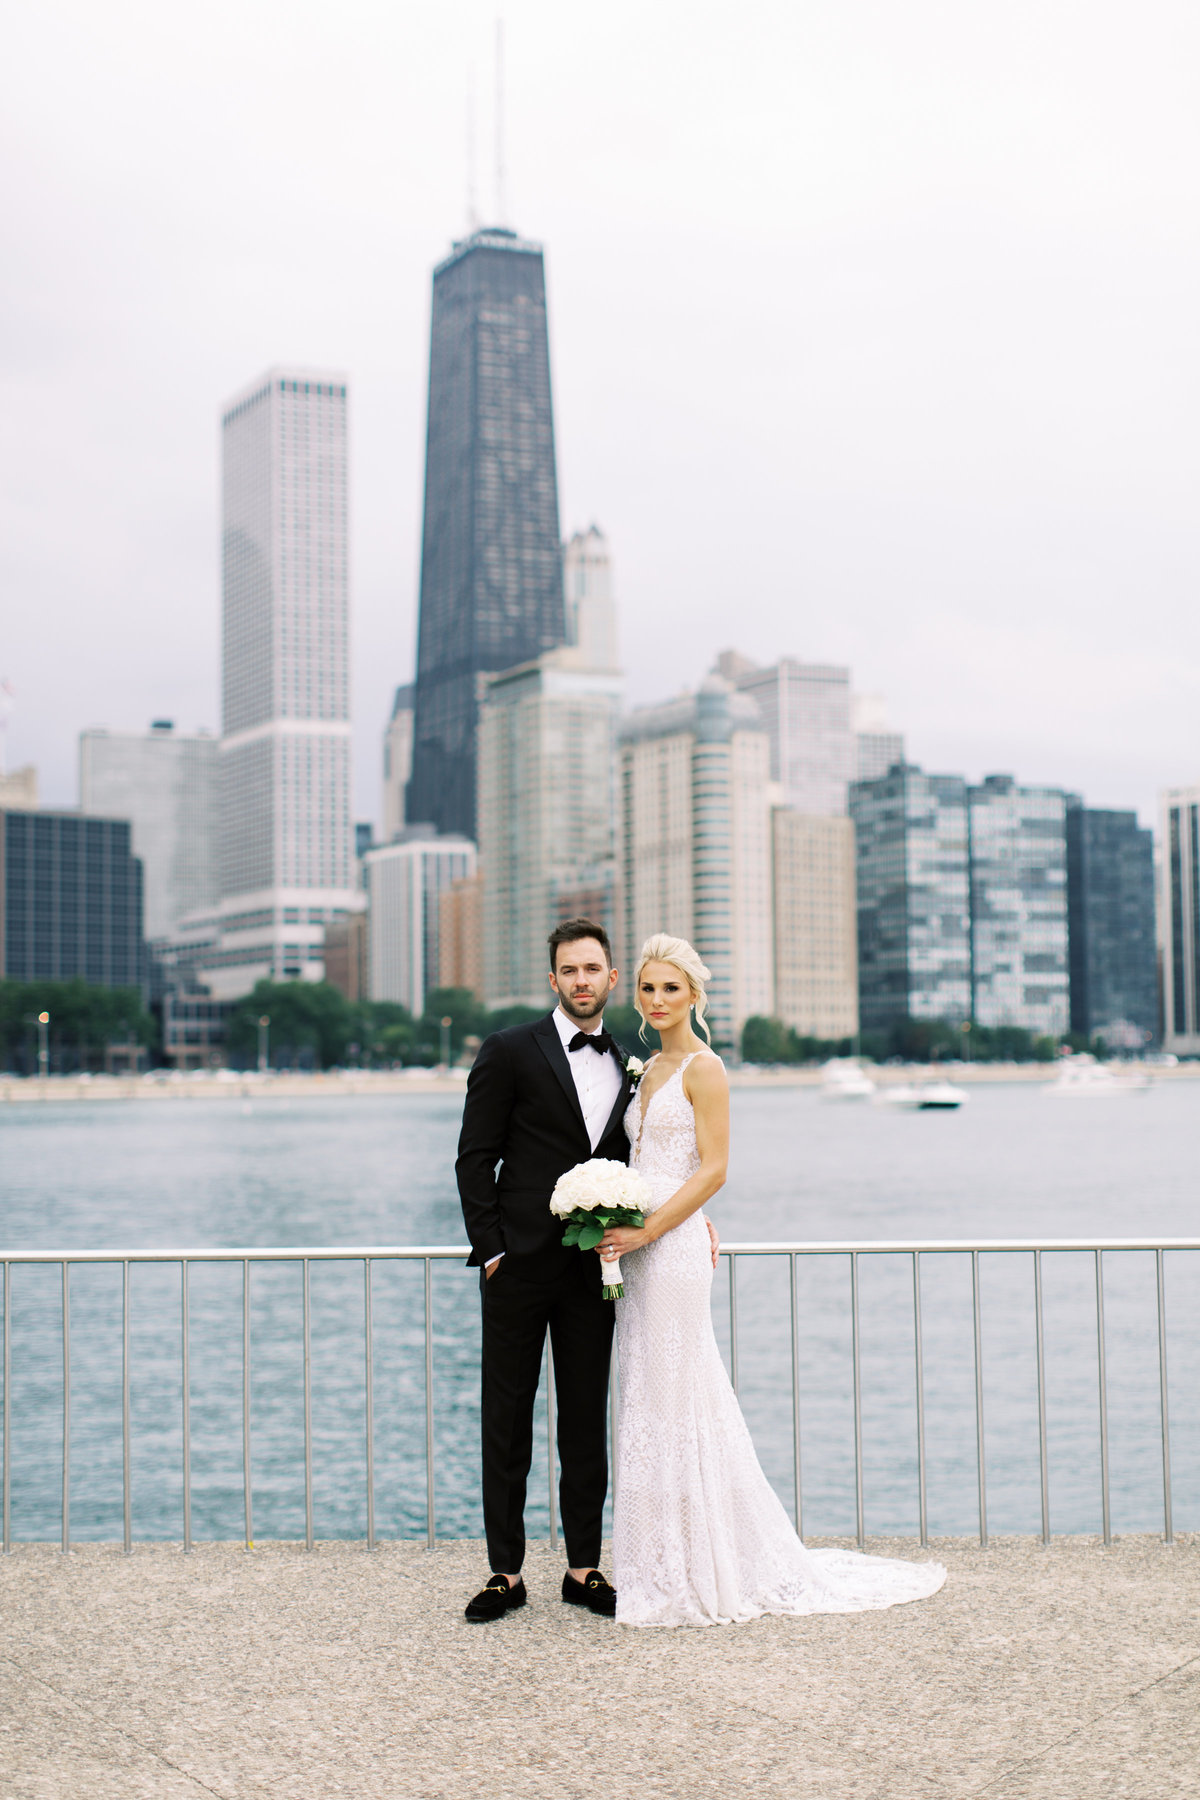 BailieTyler_Wedding_September212019_539